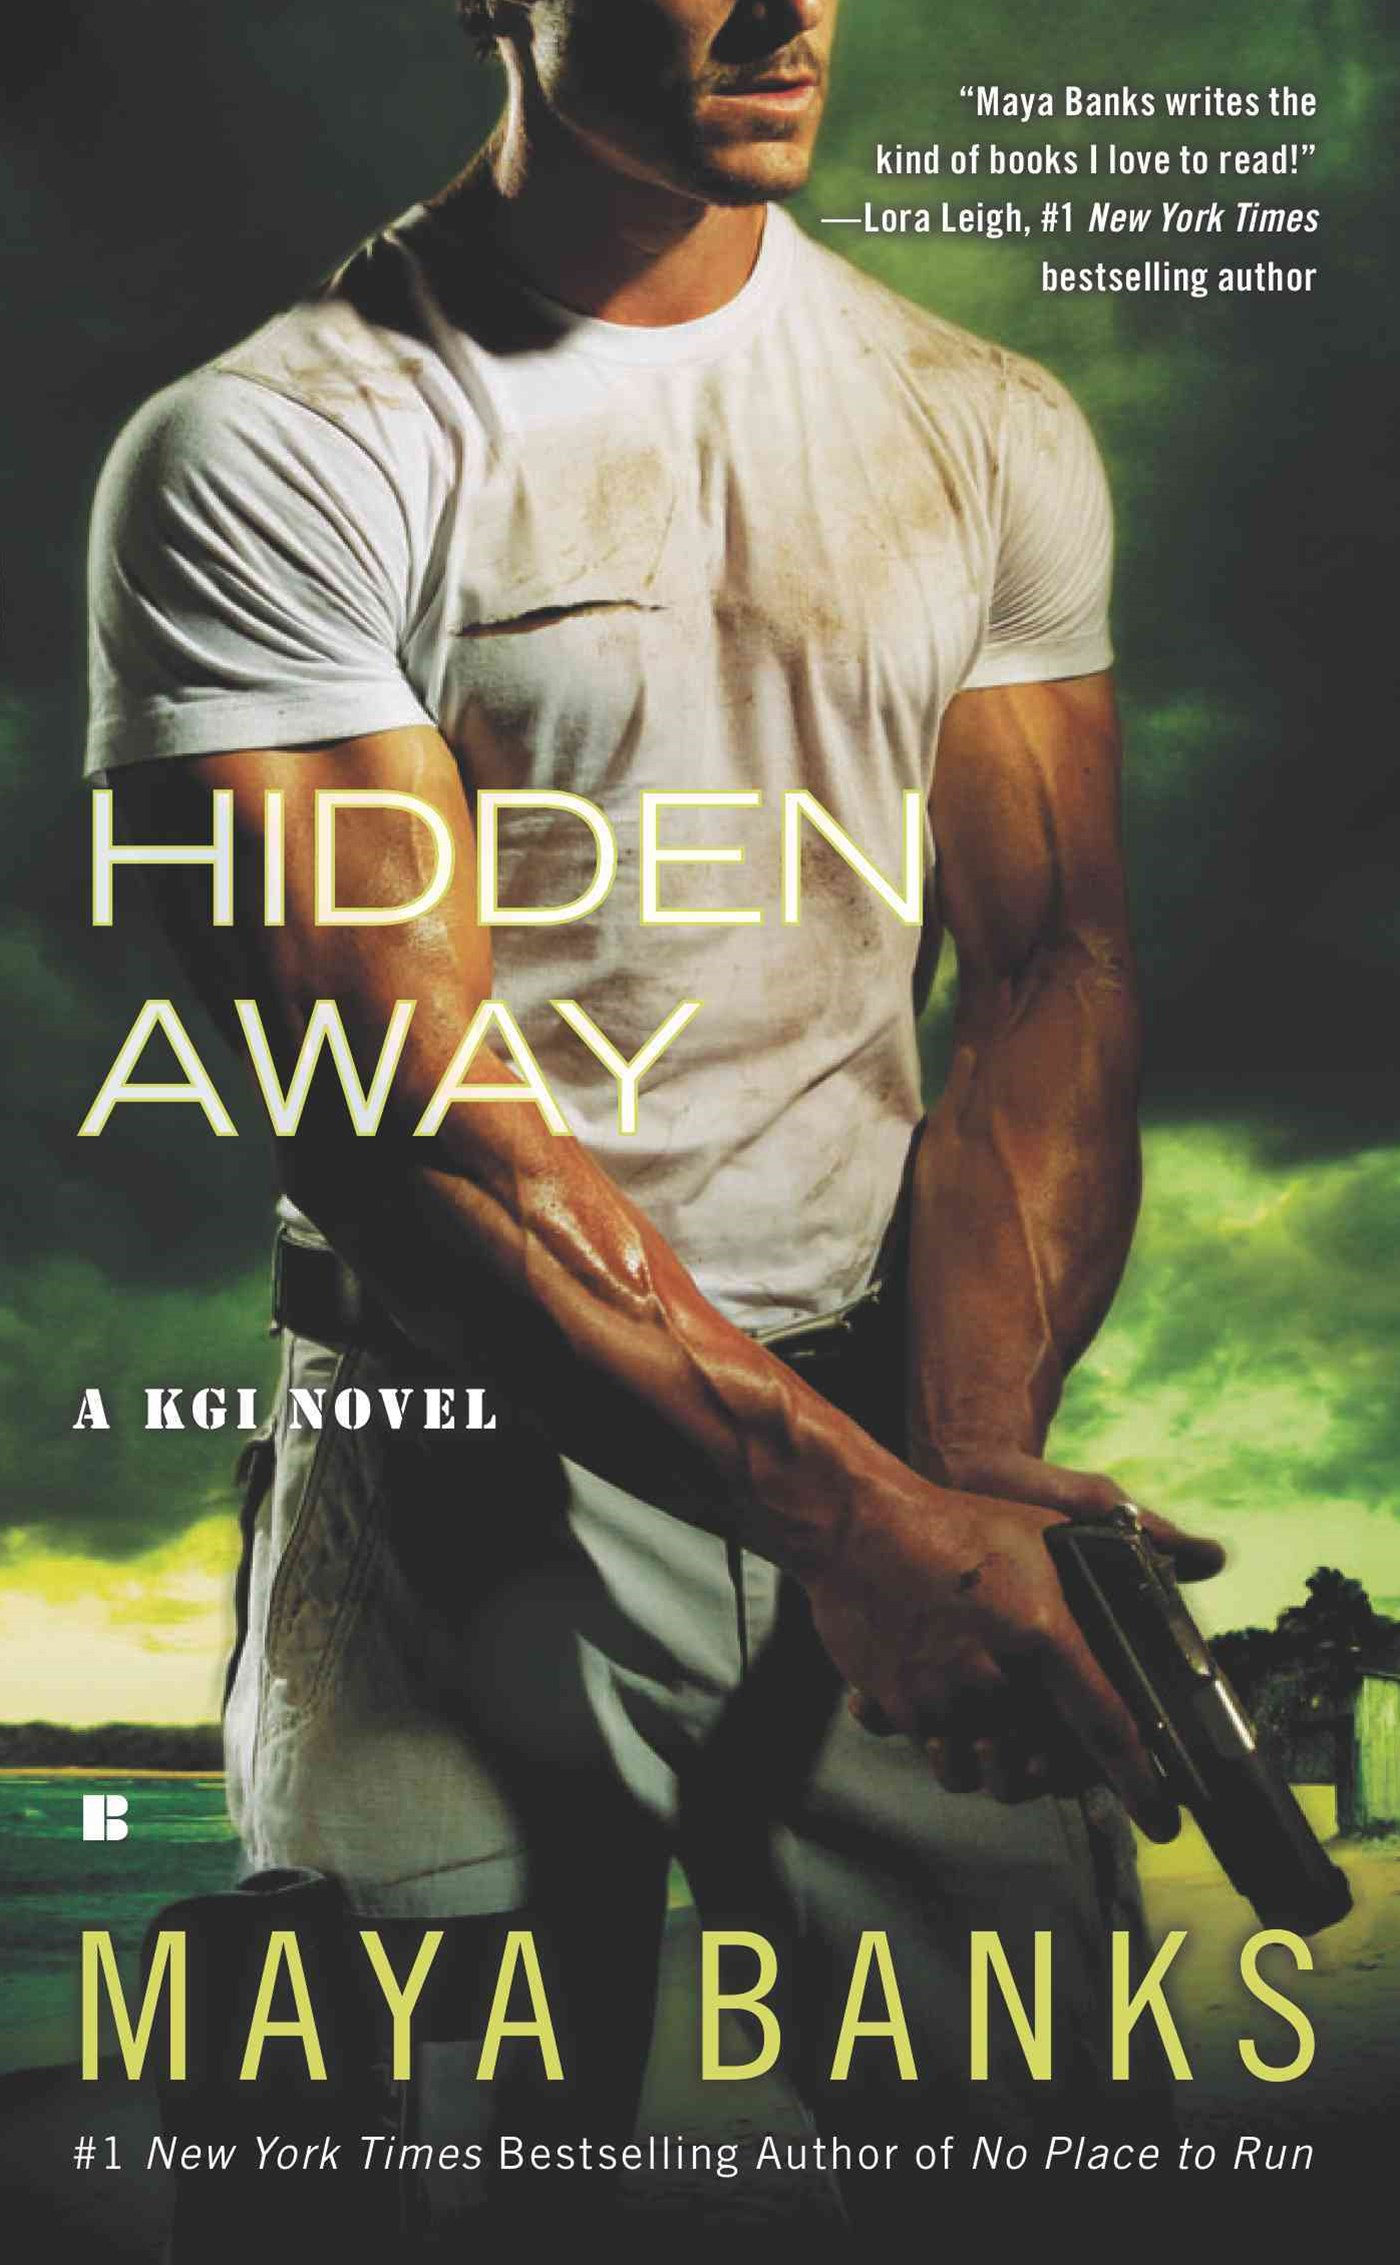 Hidden Away: A Kgi Novel Book 3